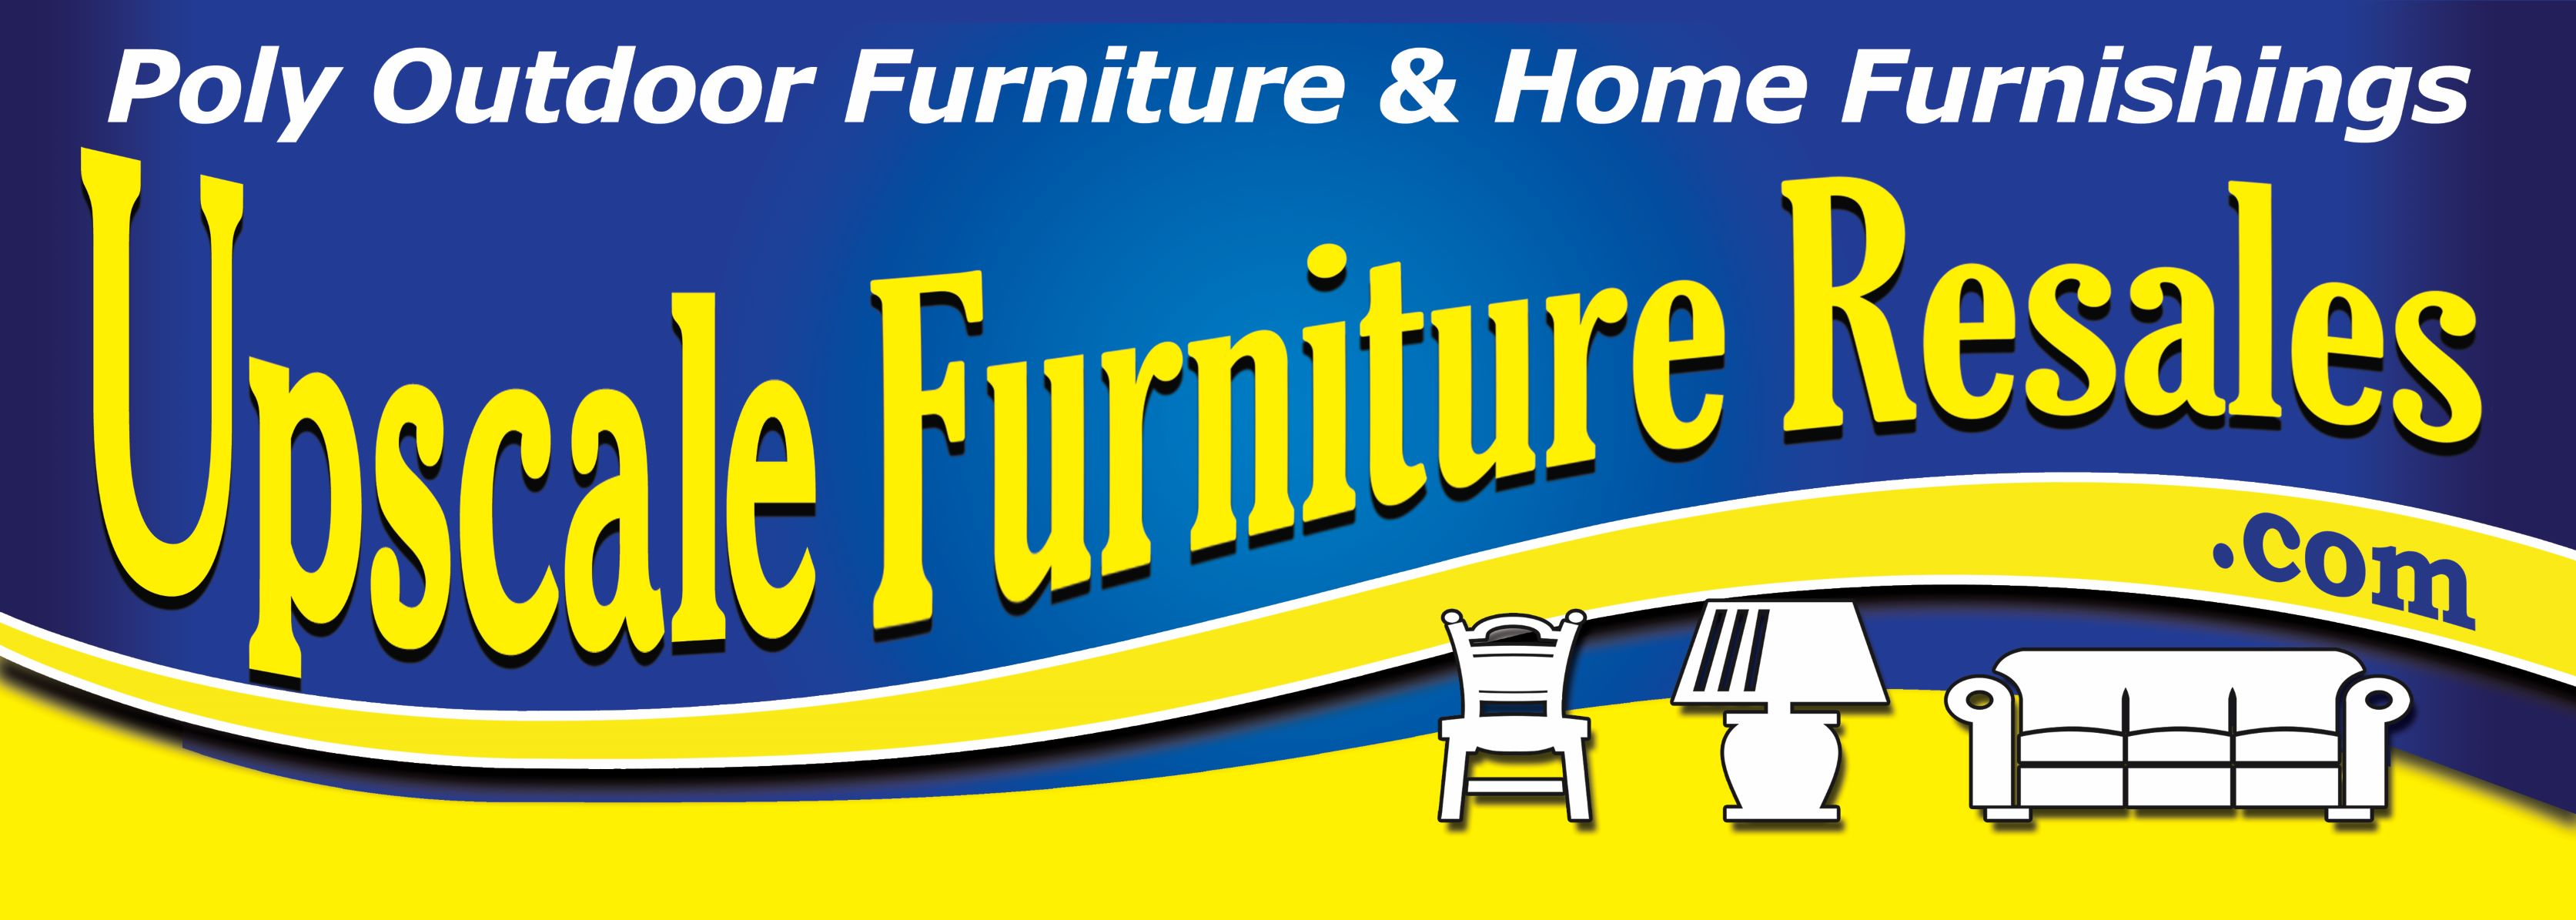 Upscale Furniture Resales